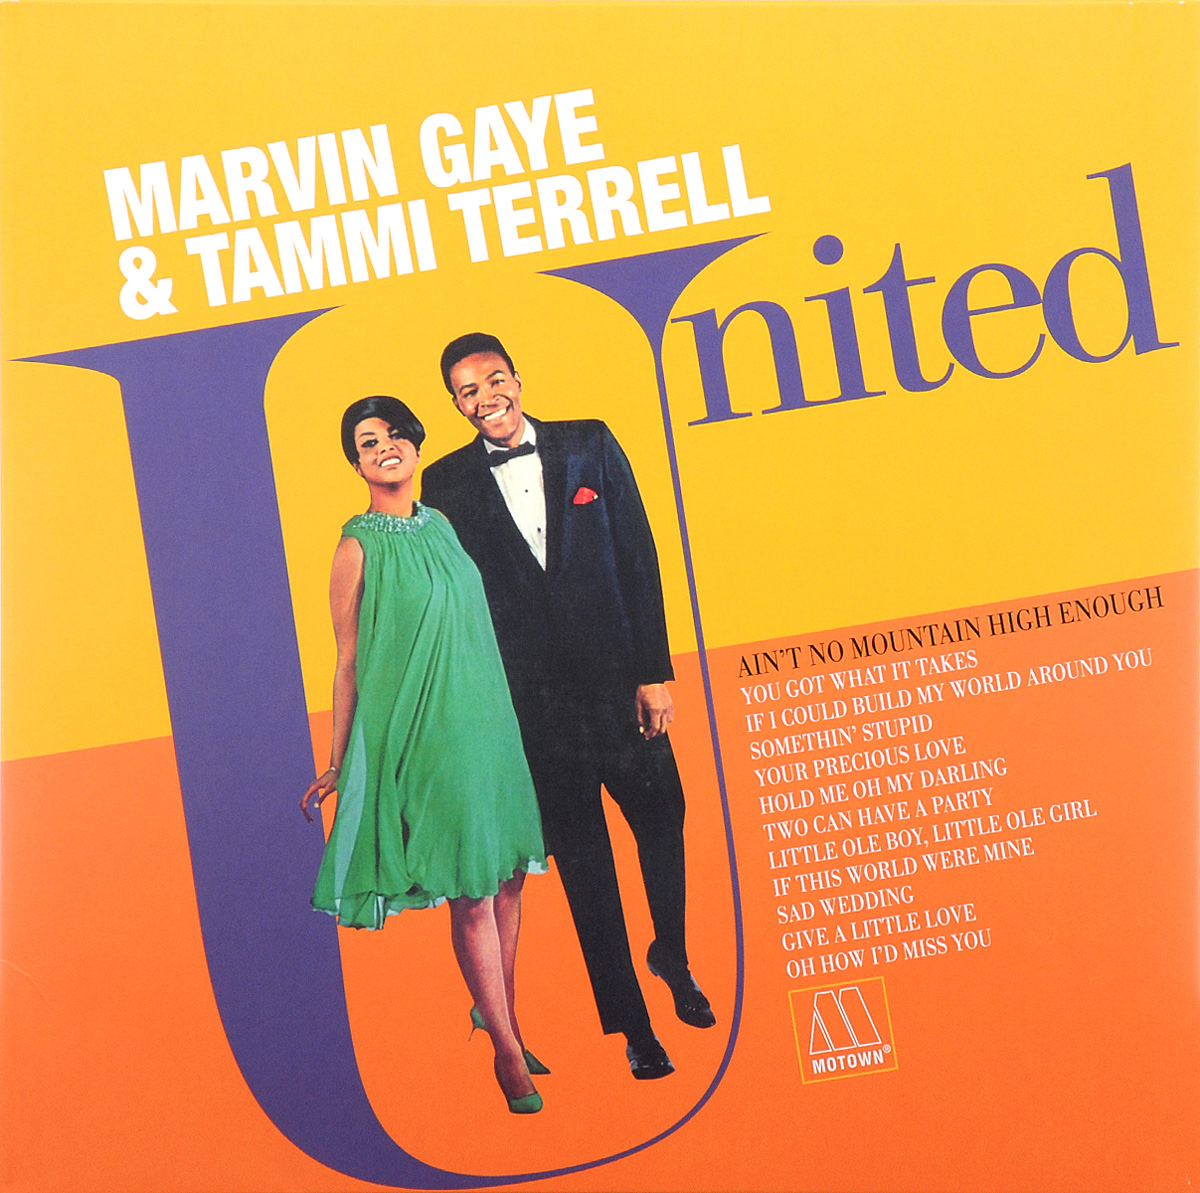 Марвин Гэй,Тэмми Тирелл Marvin Gaye & Tammi Terrell. United (LP) марвин гэй marvin gaye volume jne 1961 1965 7 lp